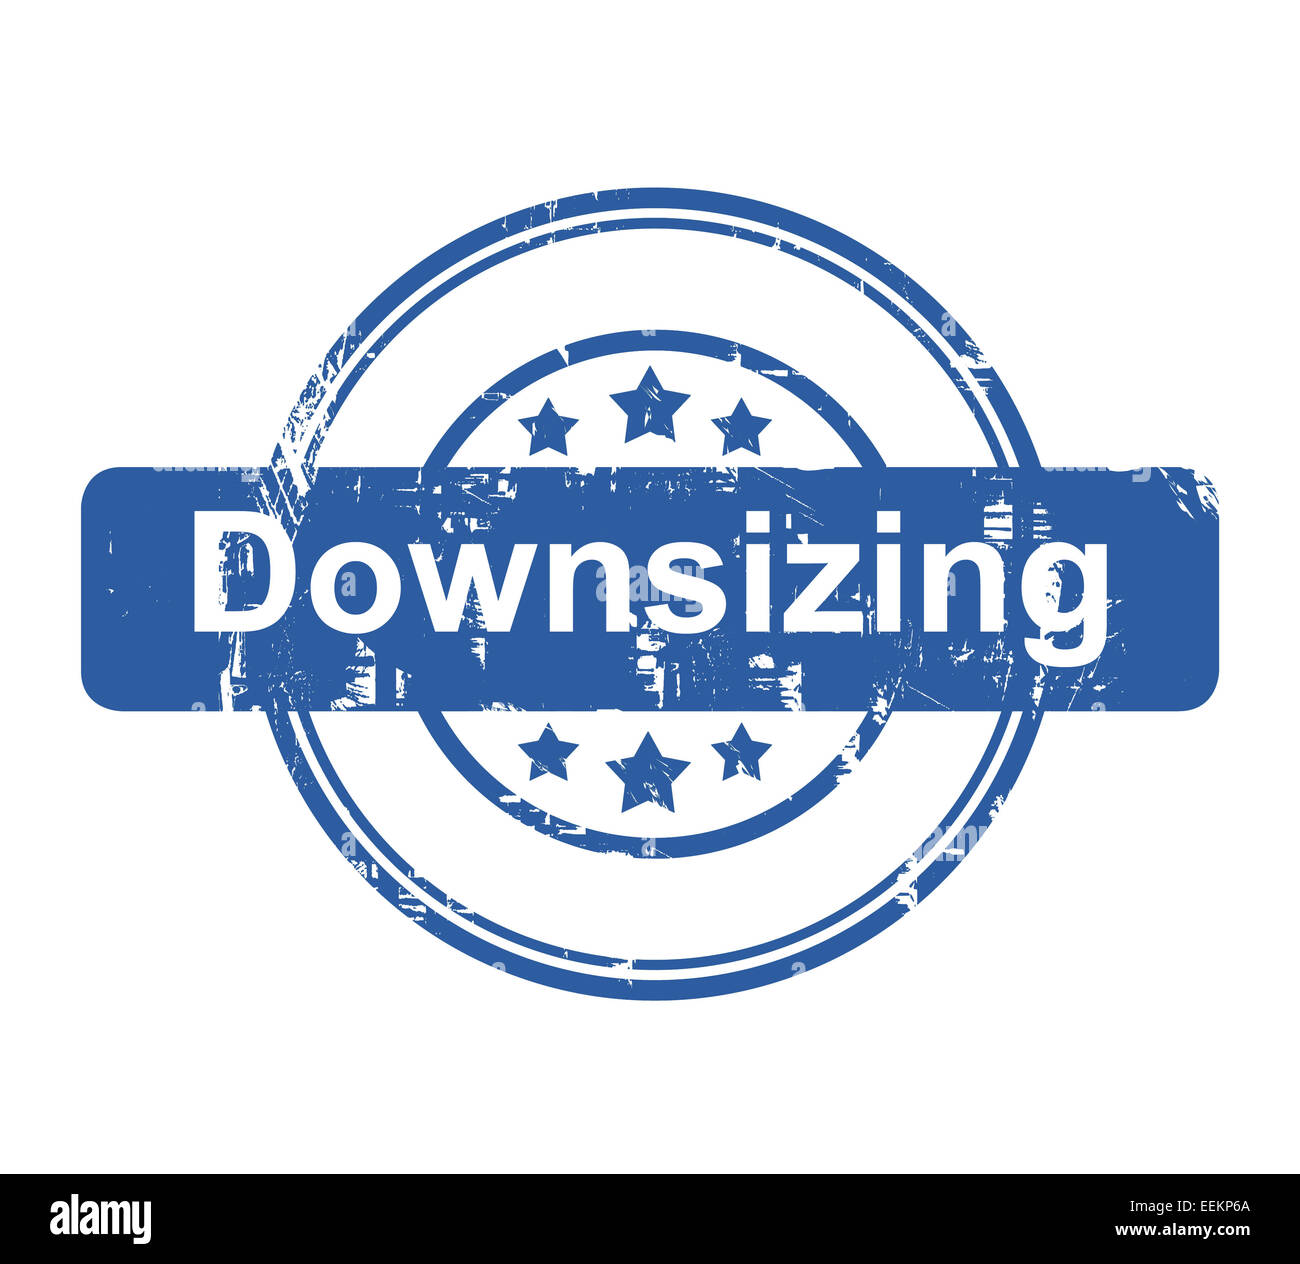 Downsizing business concept stamp with stars isolated on a white background. - Stock Image